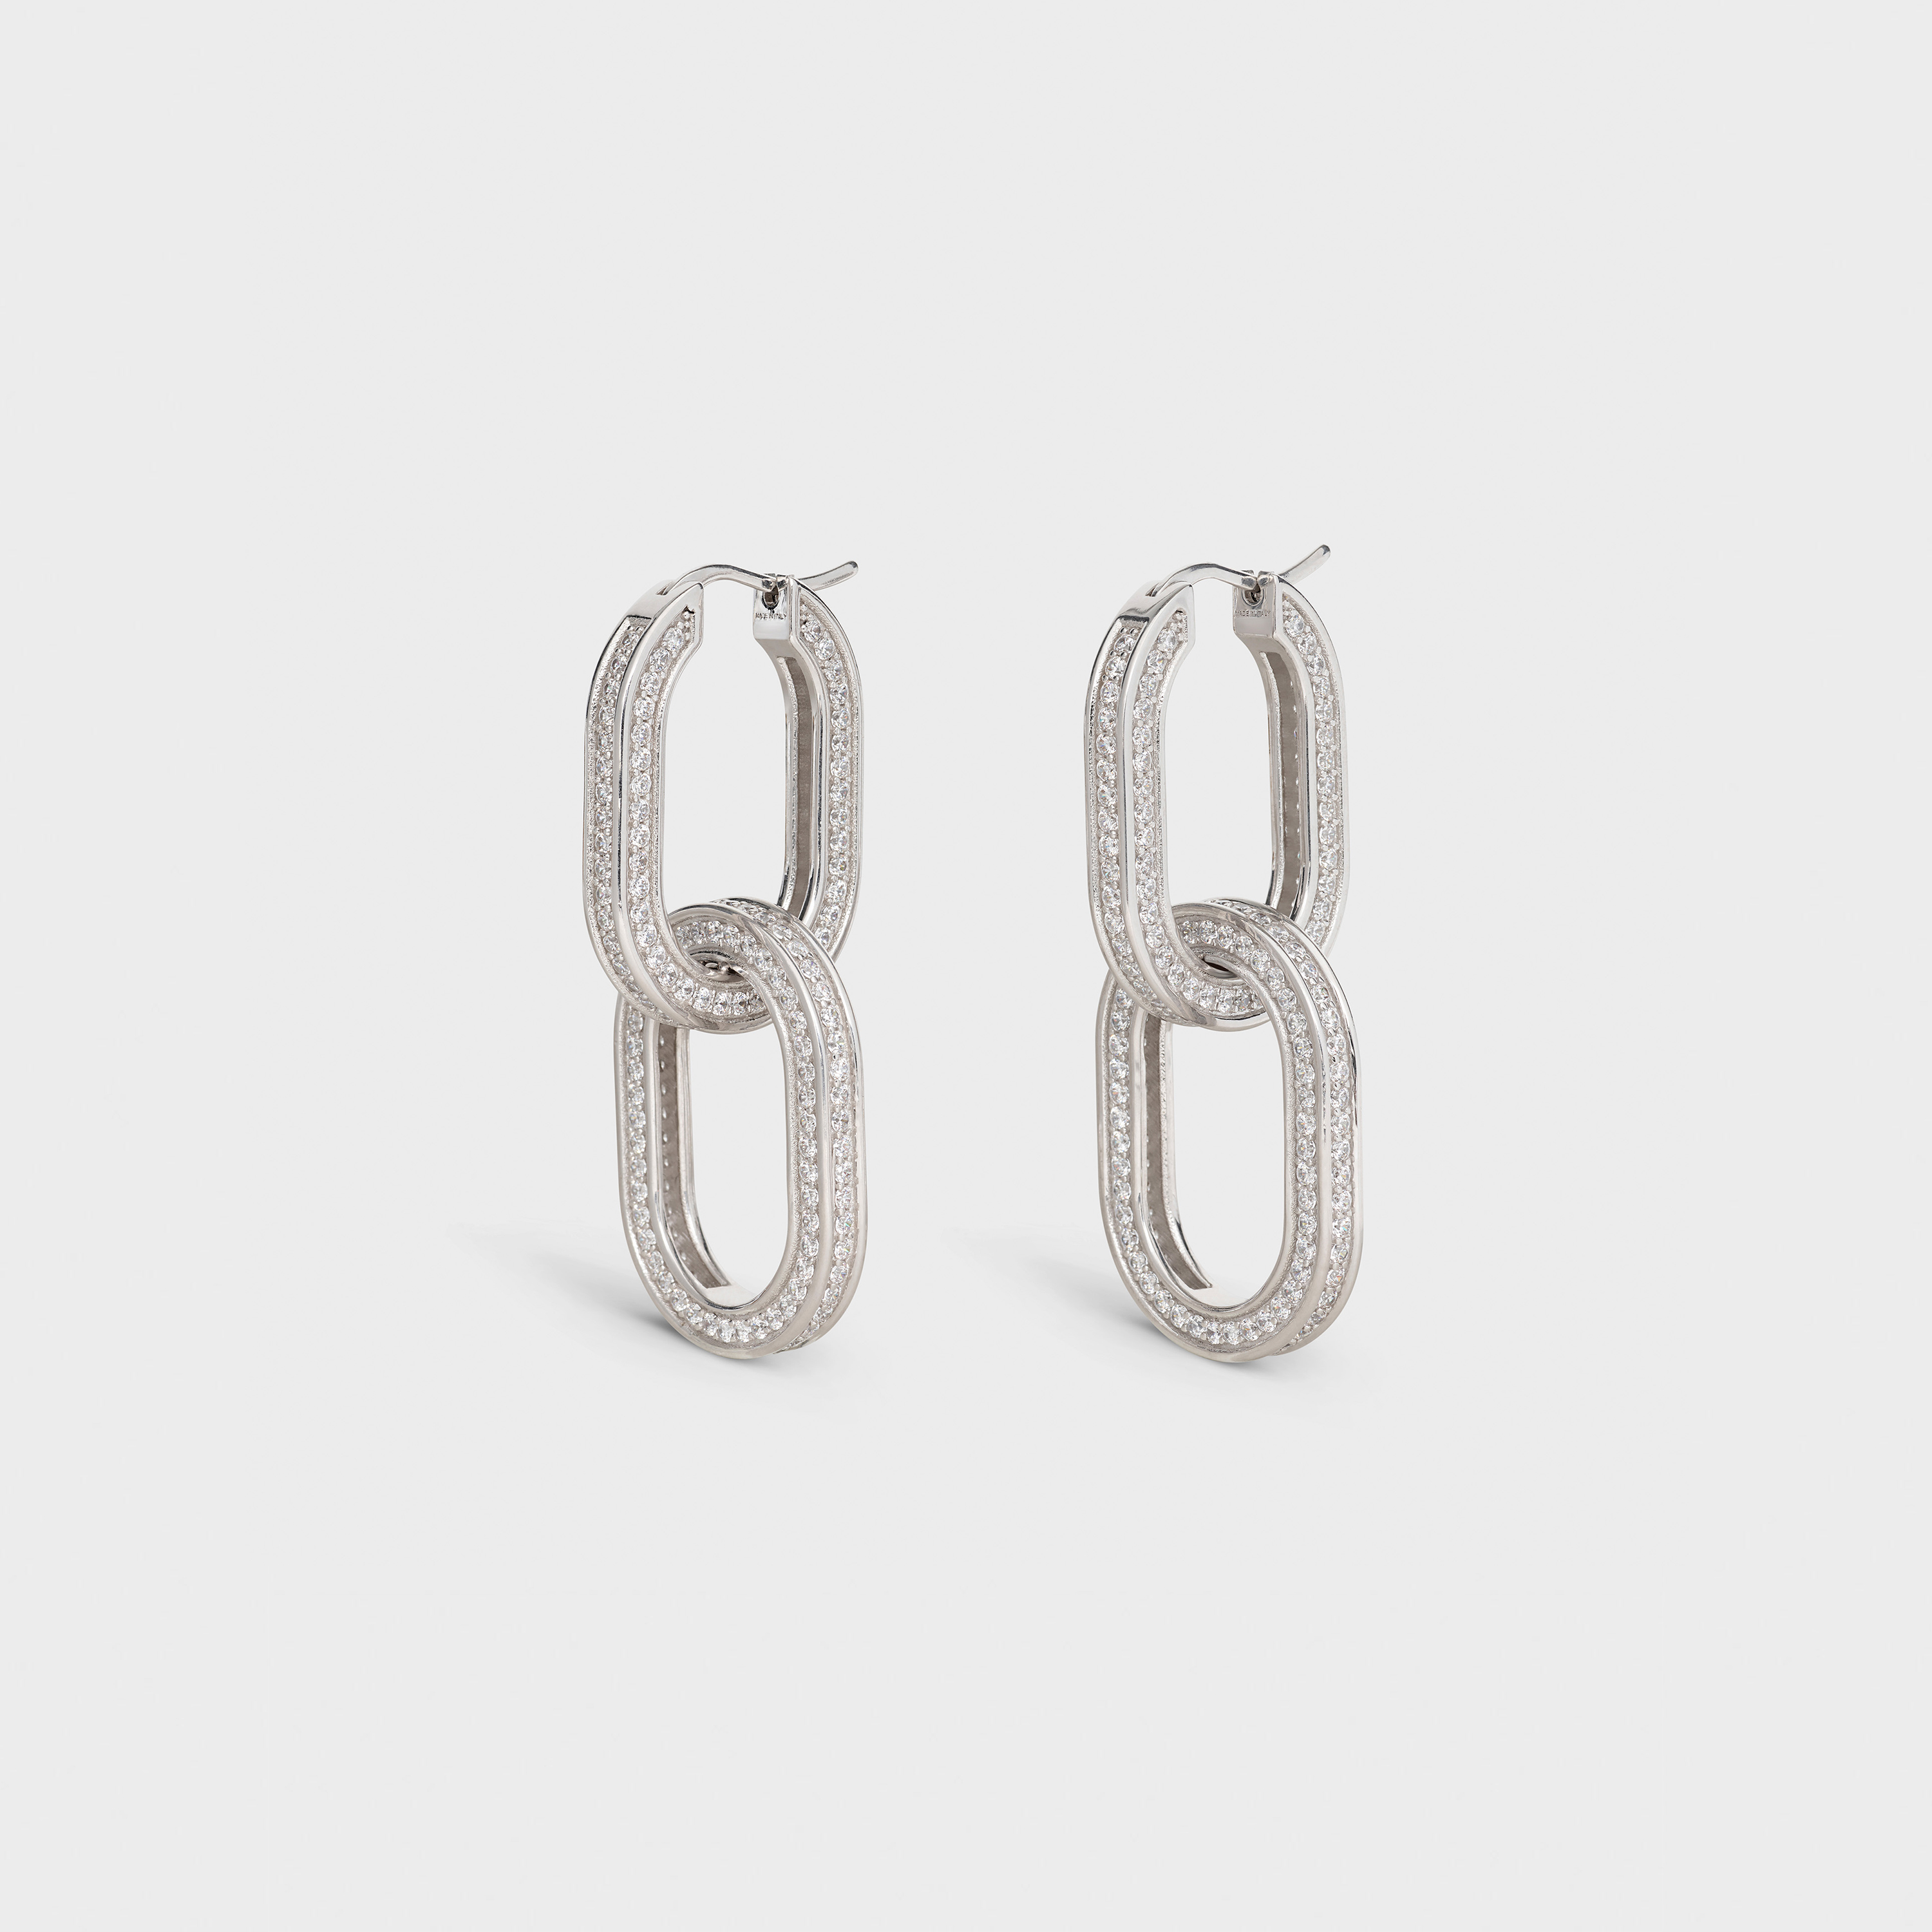 Edwige Double Hoops in Brass with Rhodium finish and Crystals | CELINE